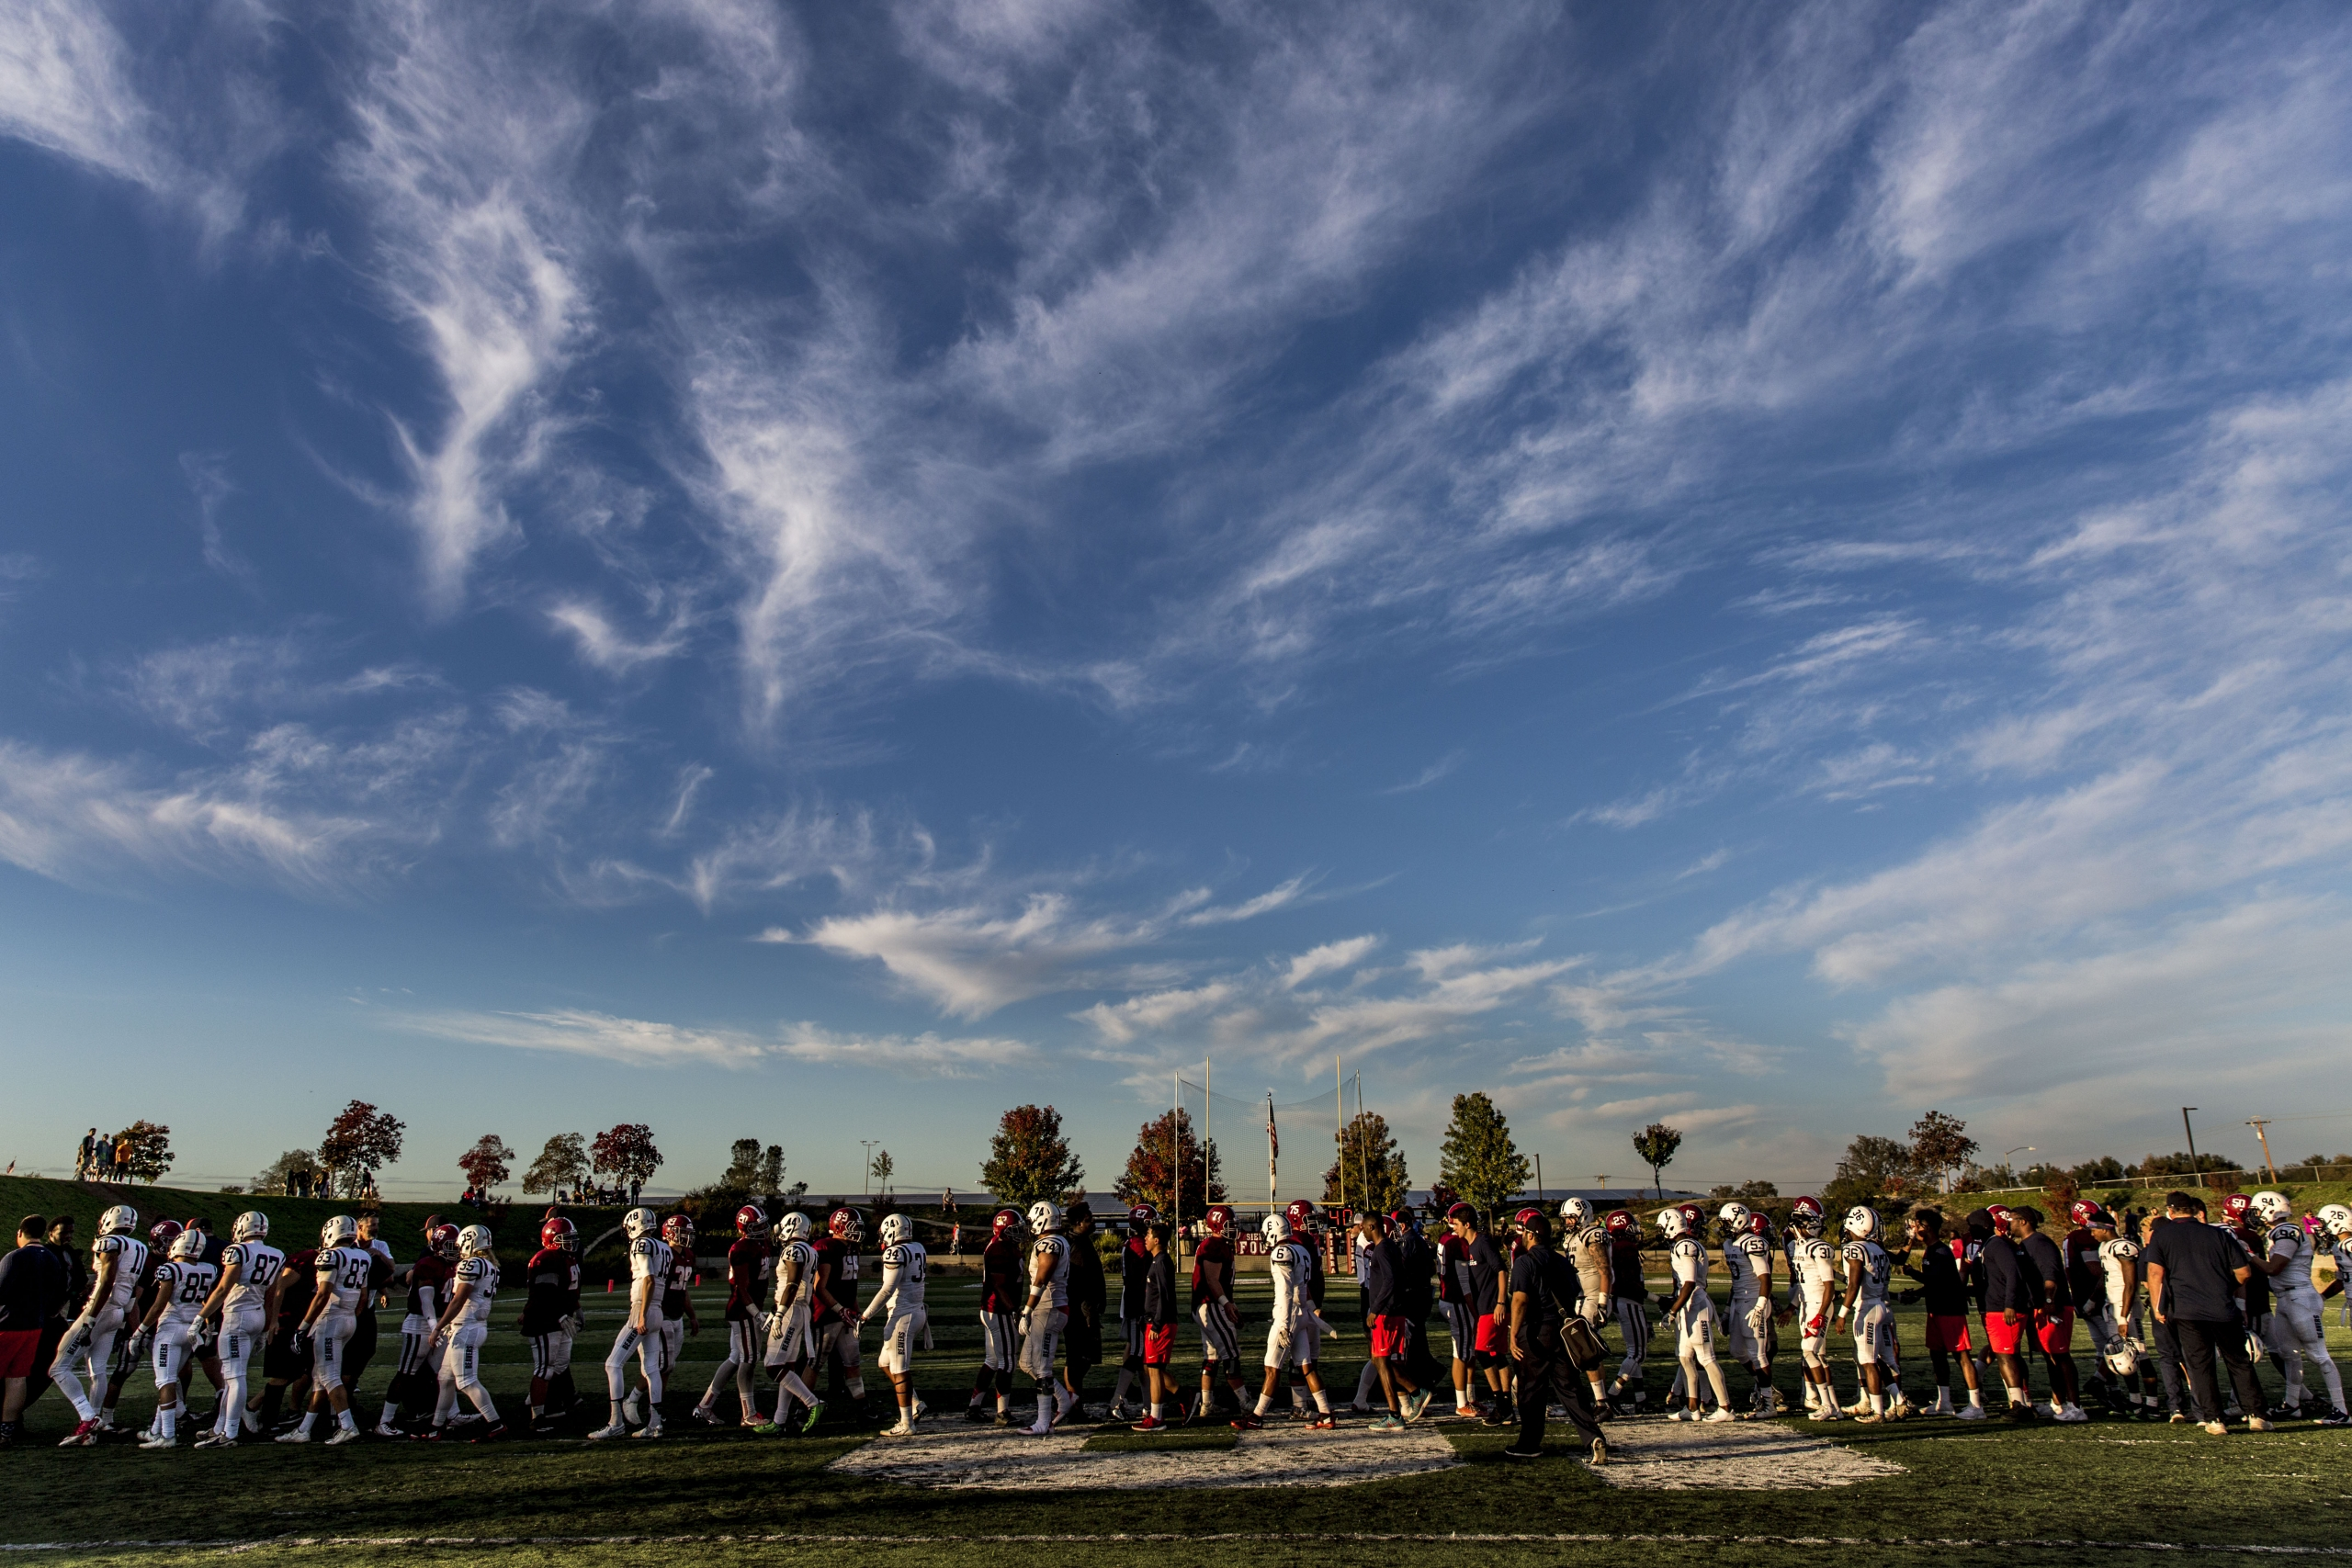 Sunny sky and football players lined up in distance, cloud patterns in wavy shapes